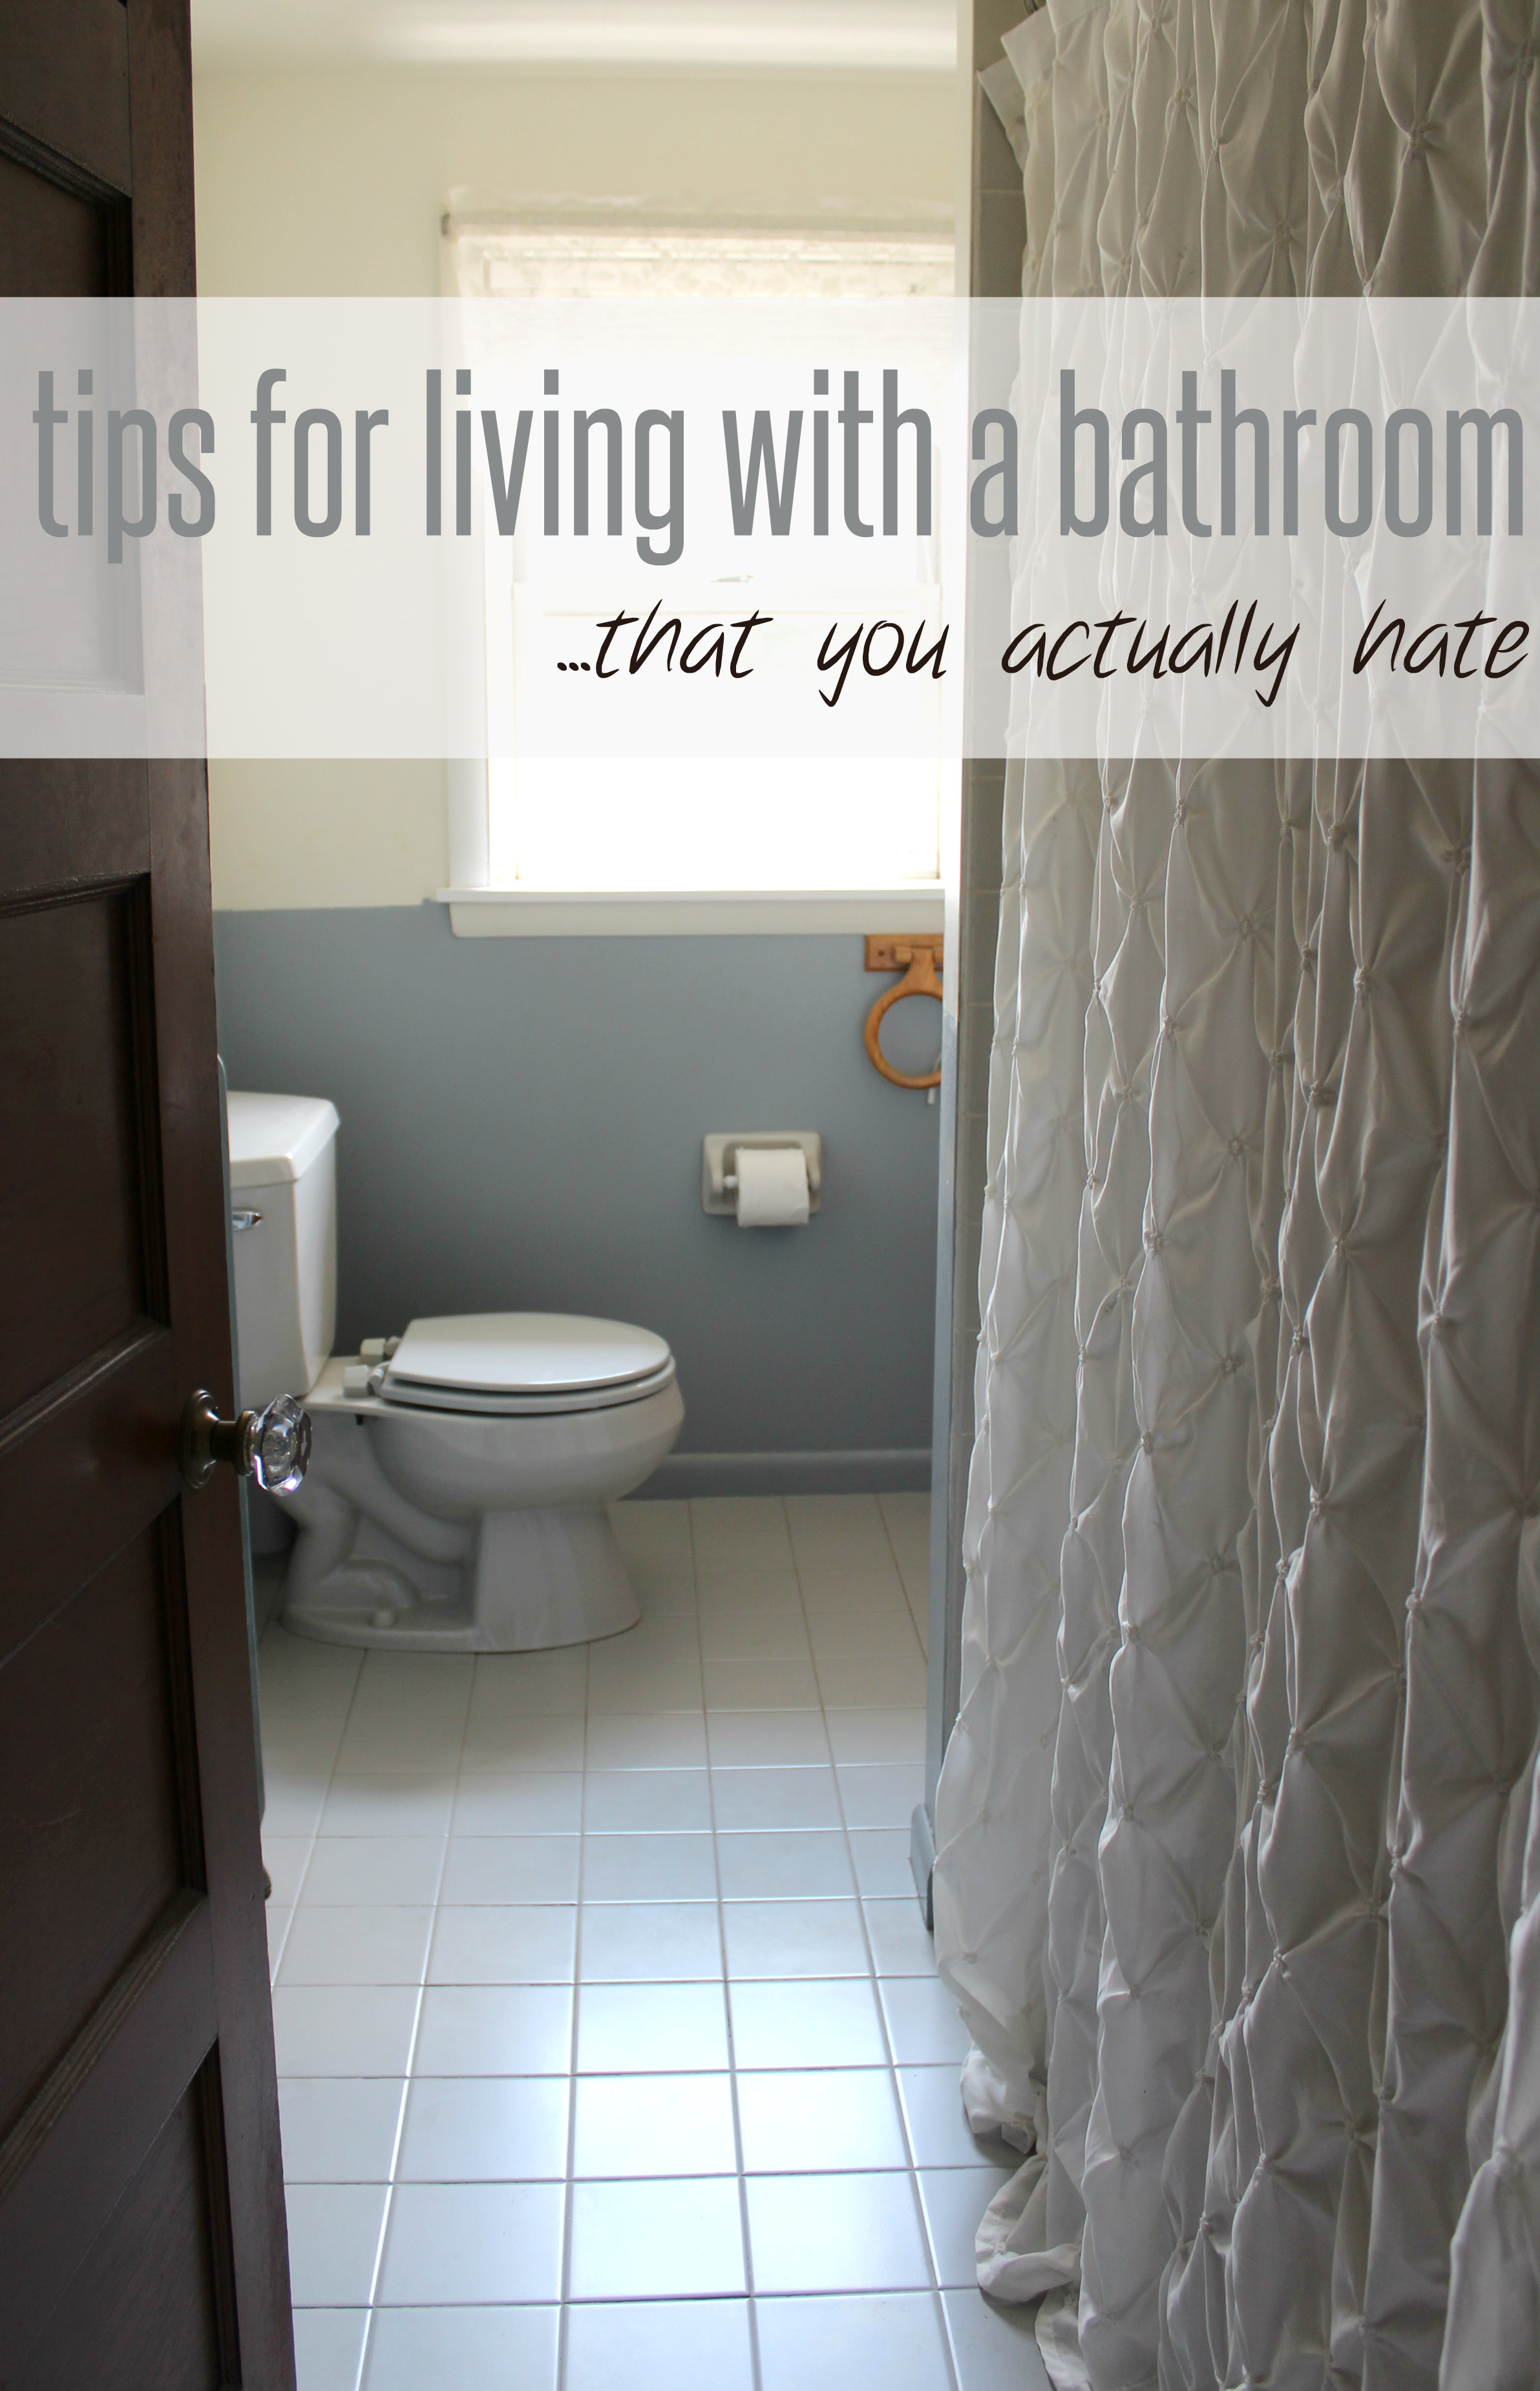 Tips for living with a bathroom that you actually hate